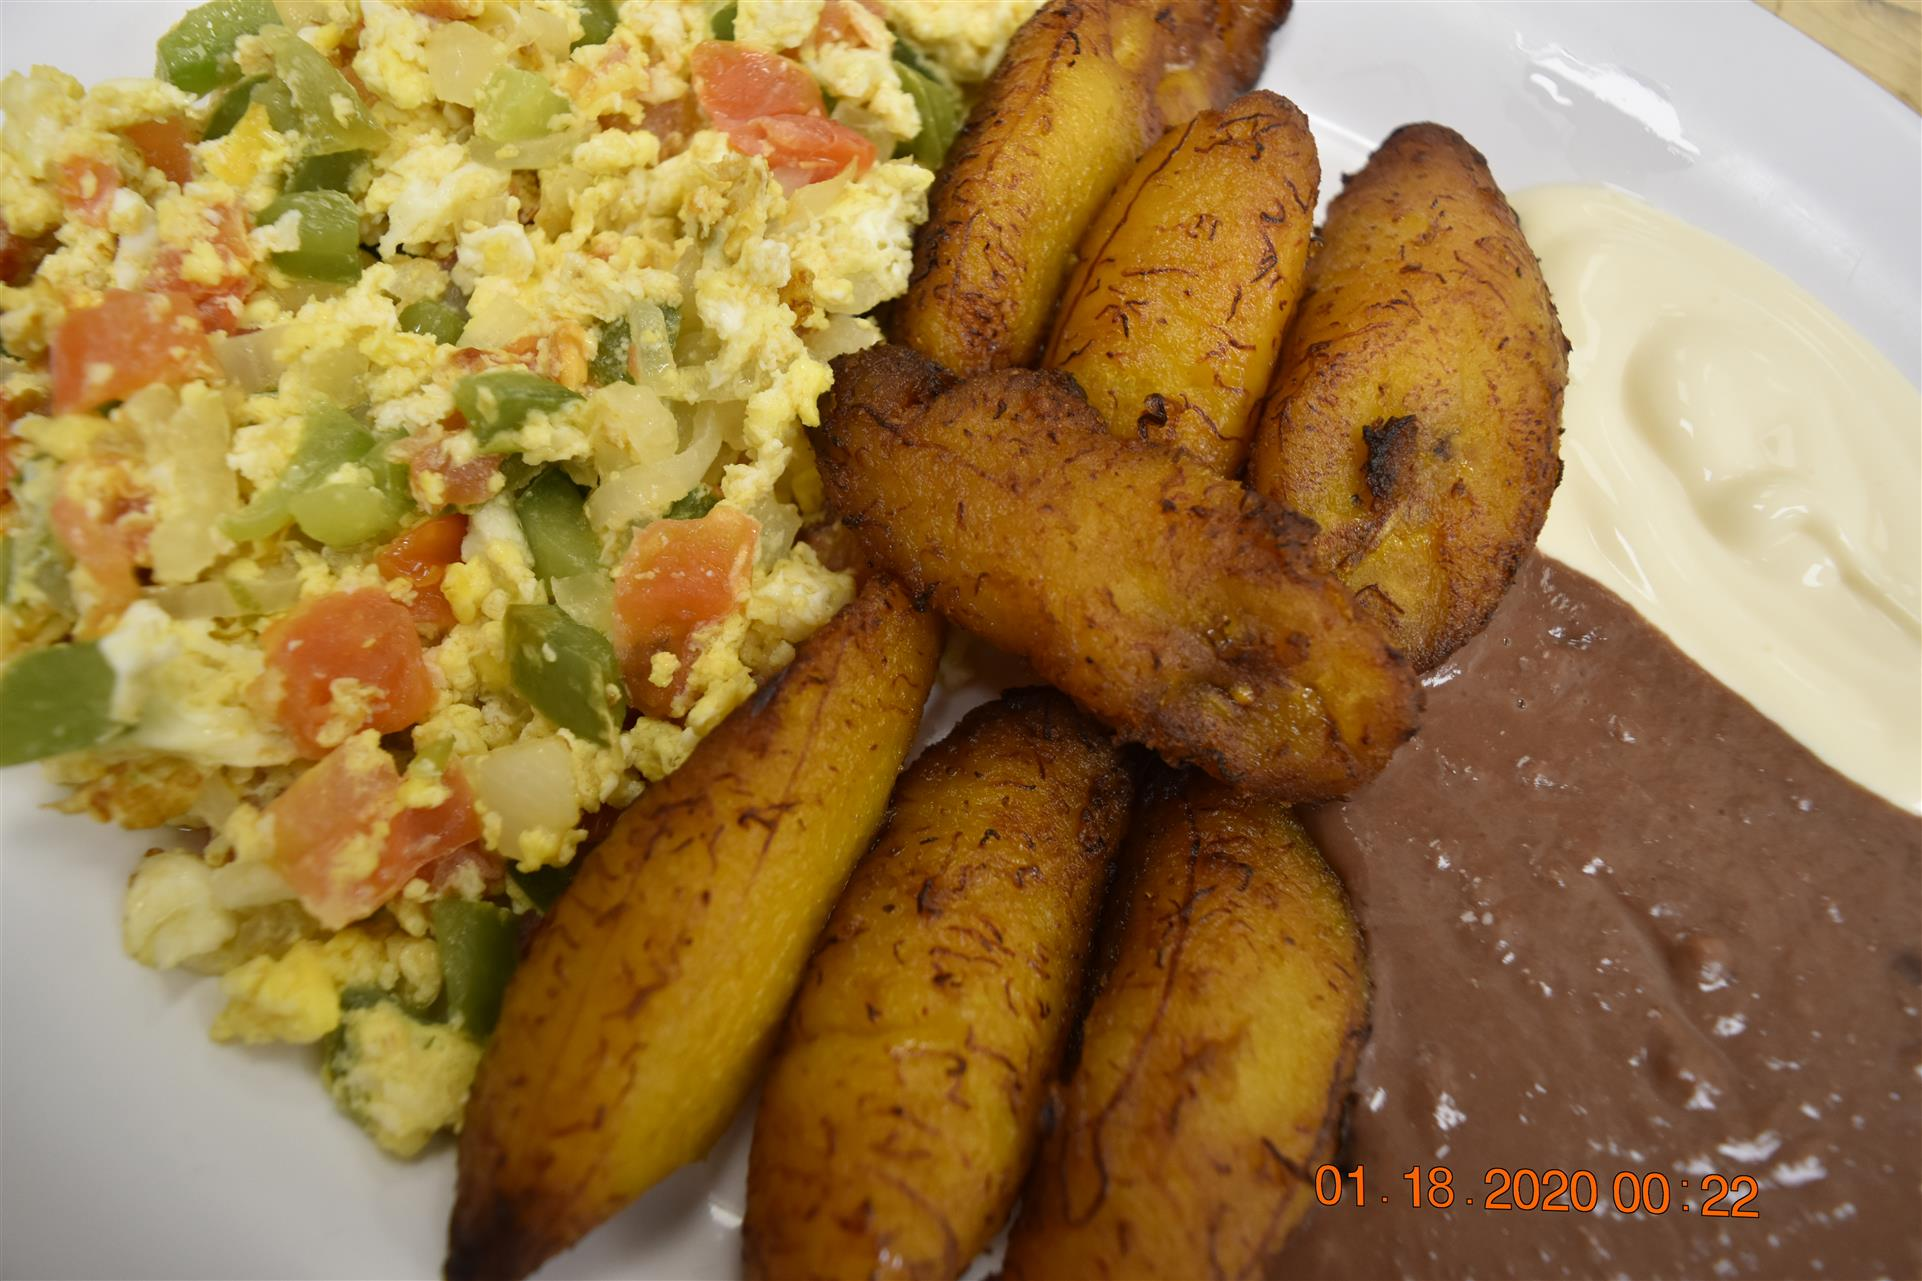 fried plantains with side of rice and beans